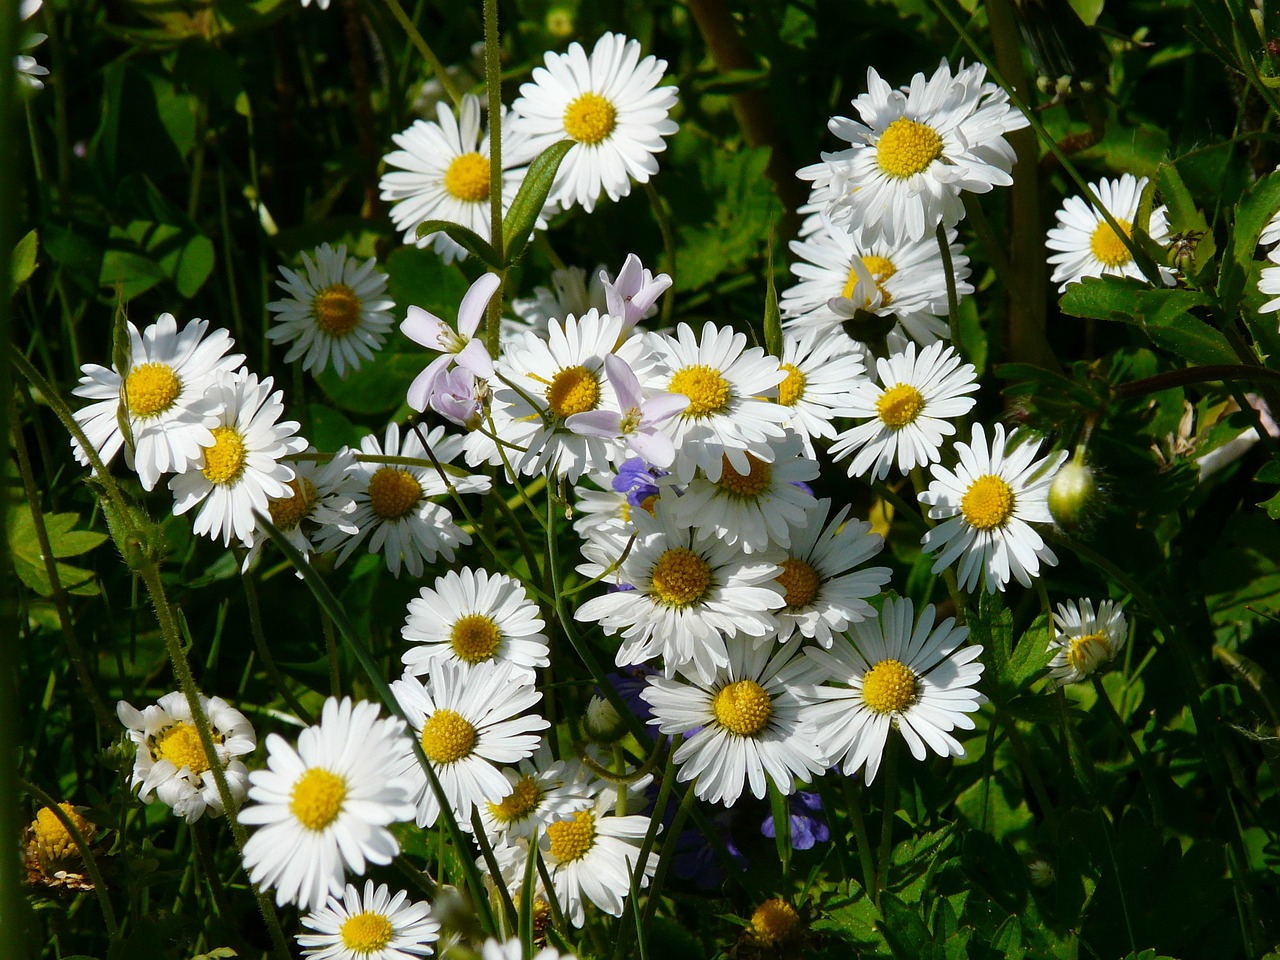 daisy meadow wildflowers free photo